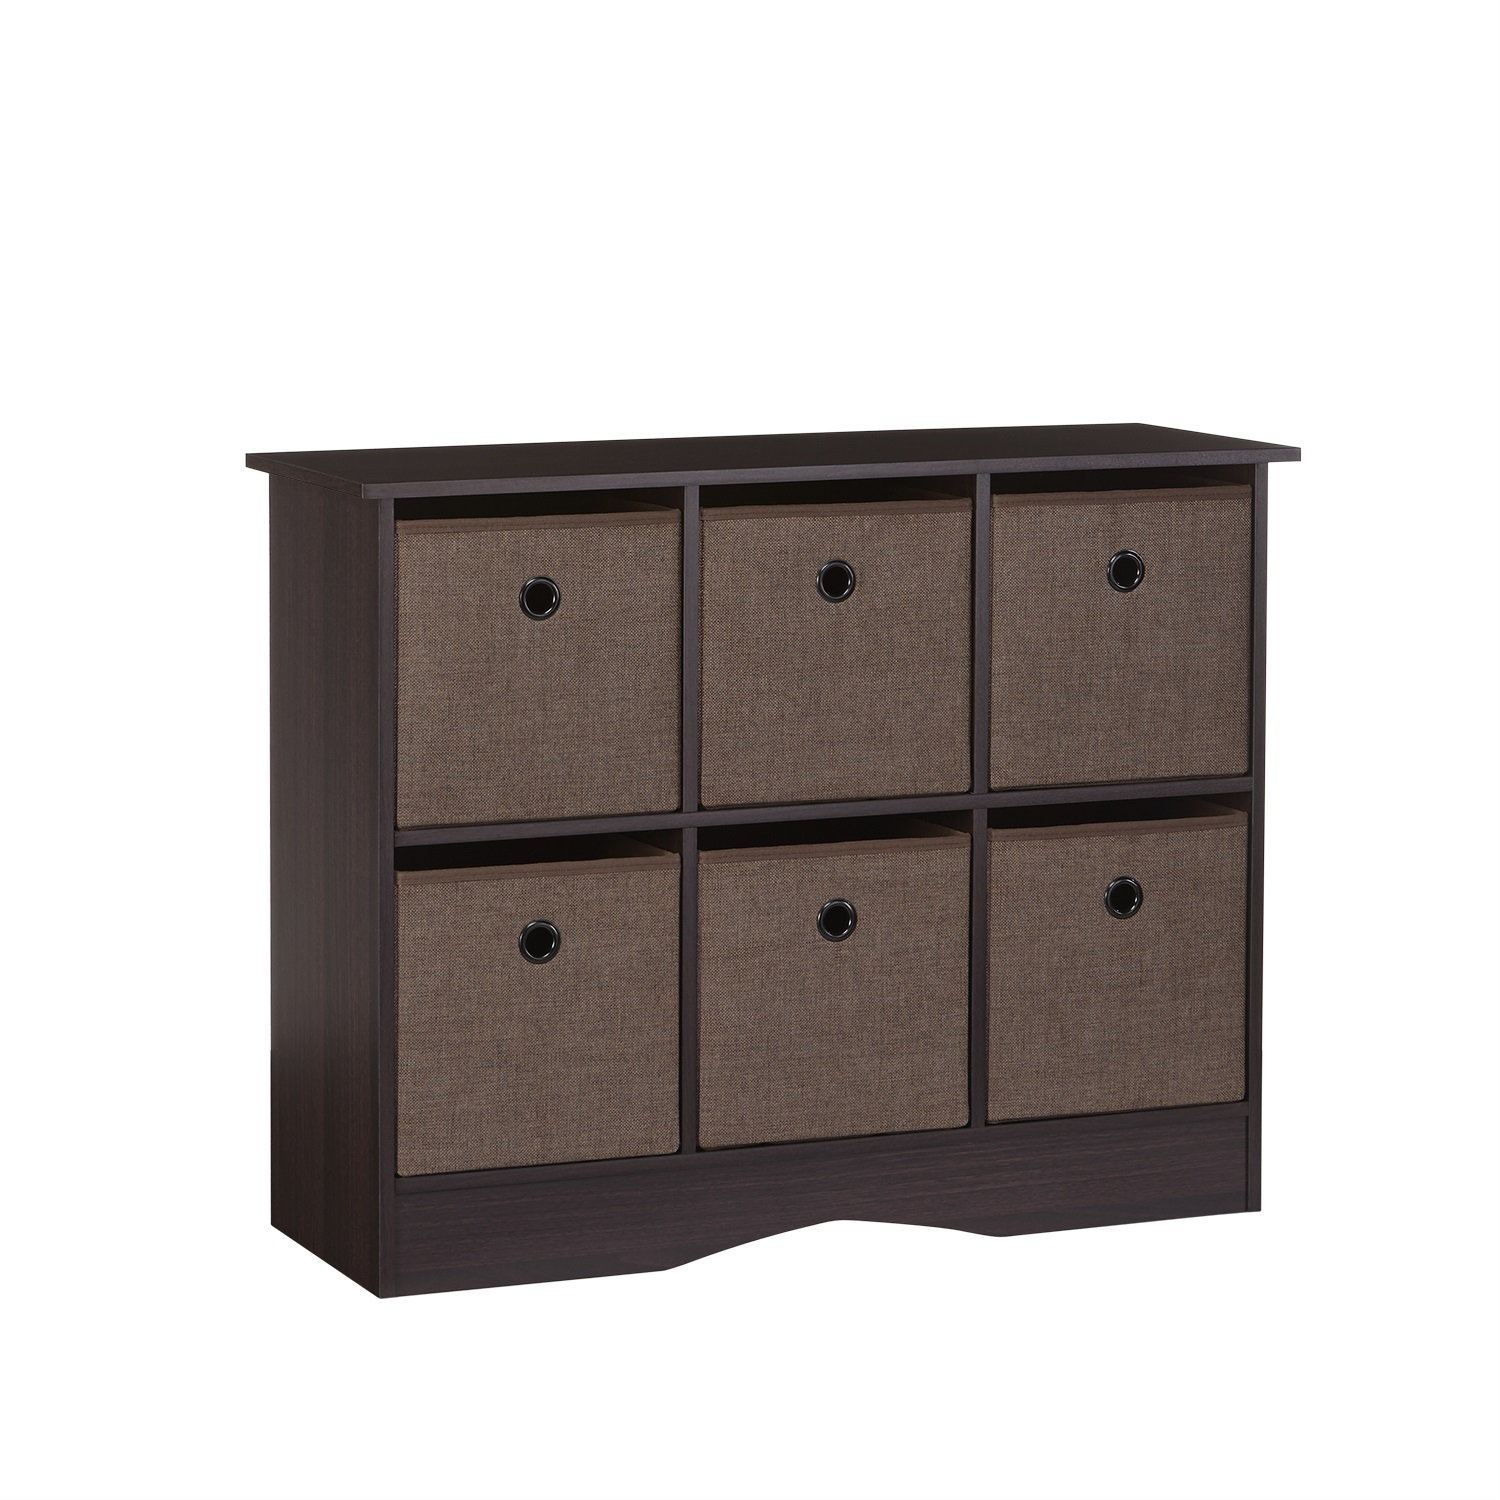 RiverRidge 6 Cubby Storage Cabinet With Bins U2013 Espresso/Brown